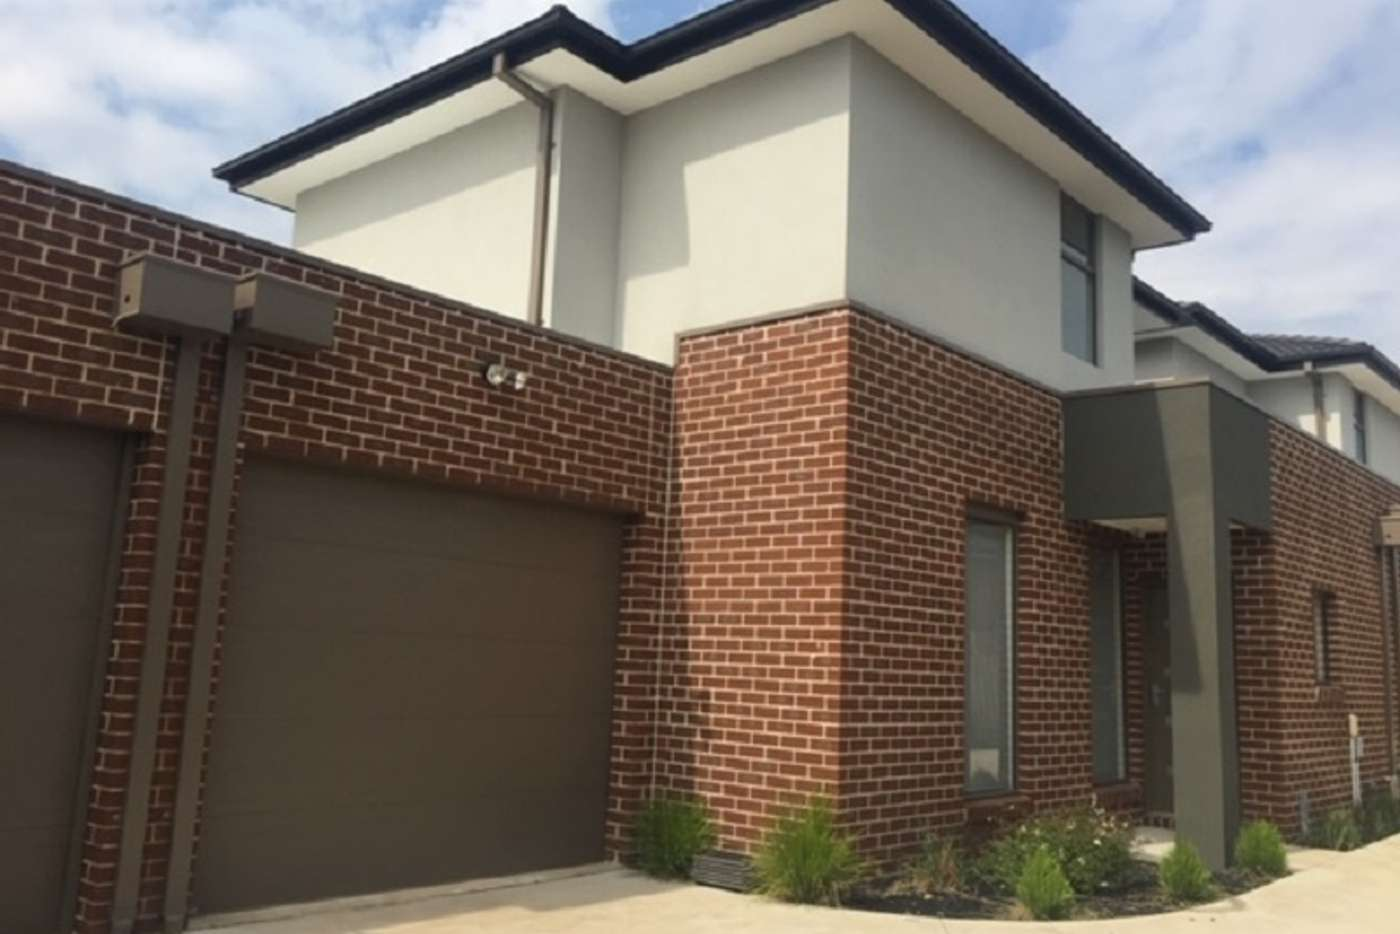 Main view of Homely townhouse listing, 3/8 Carter Street, Noble Park VIC 3174